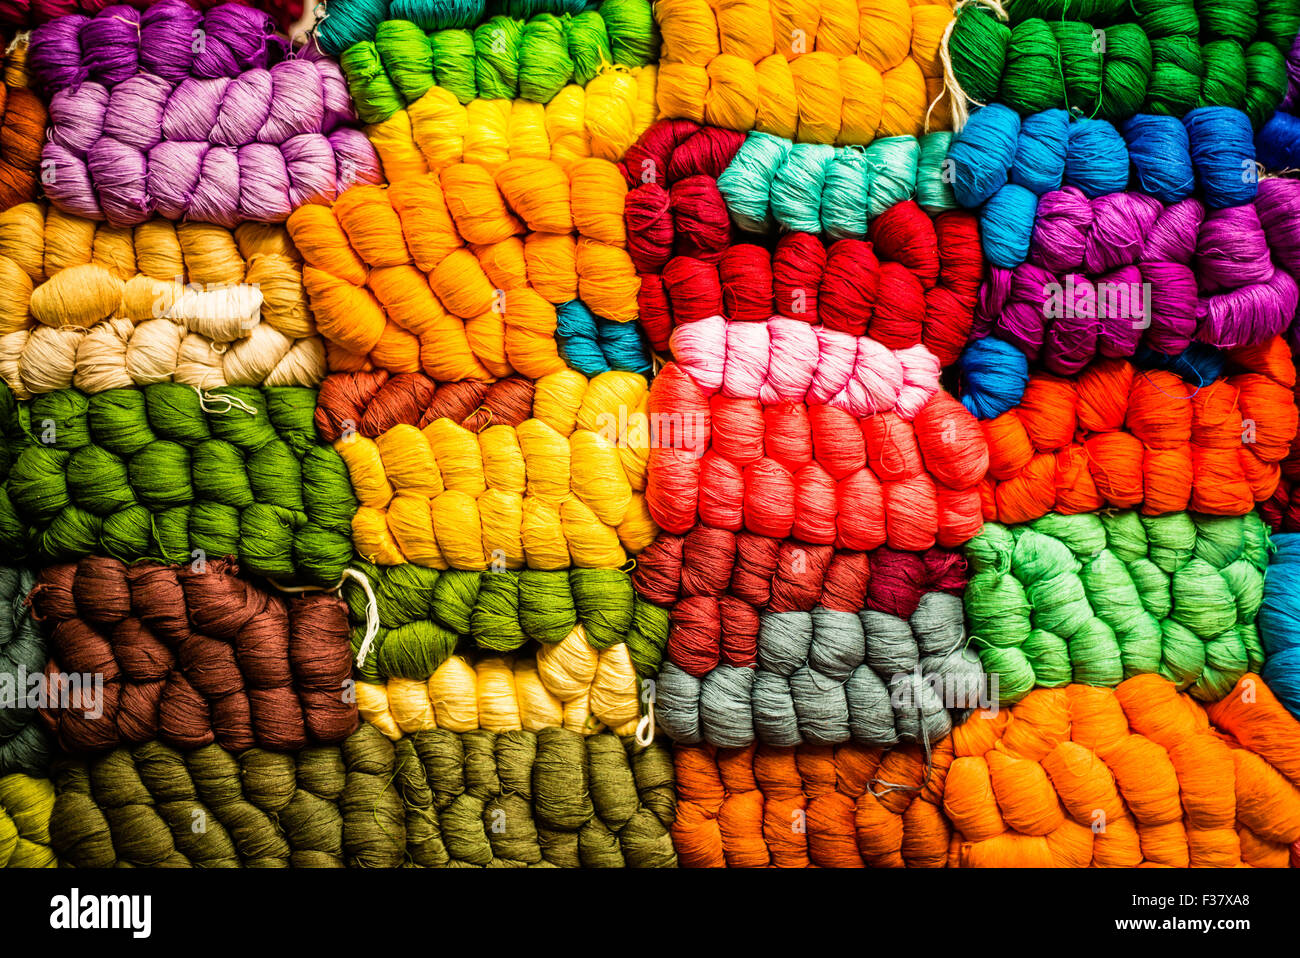 Thread for embroidery and weaving , Guatemala. Stock Photo